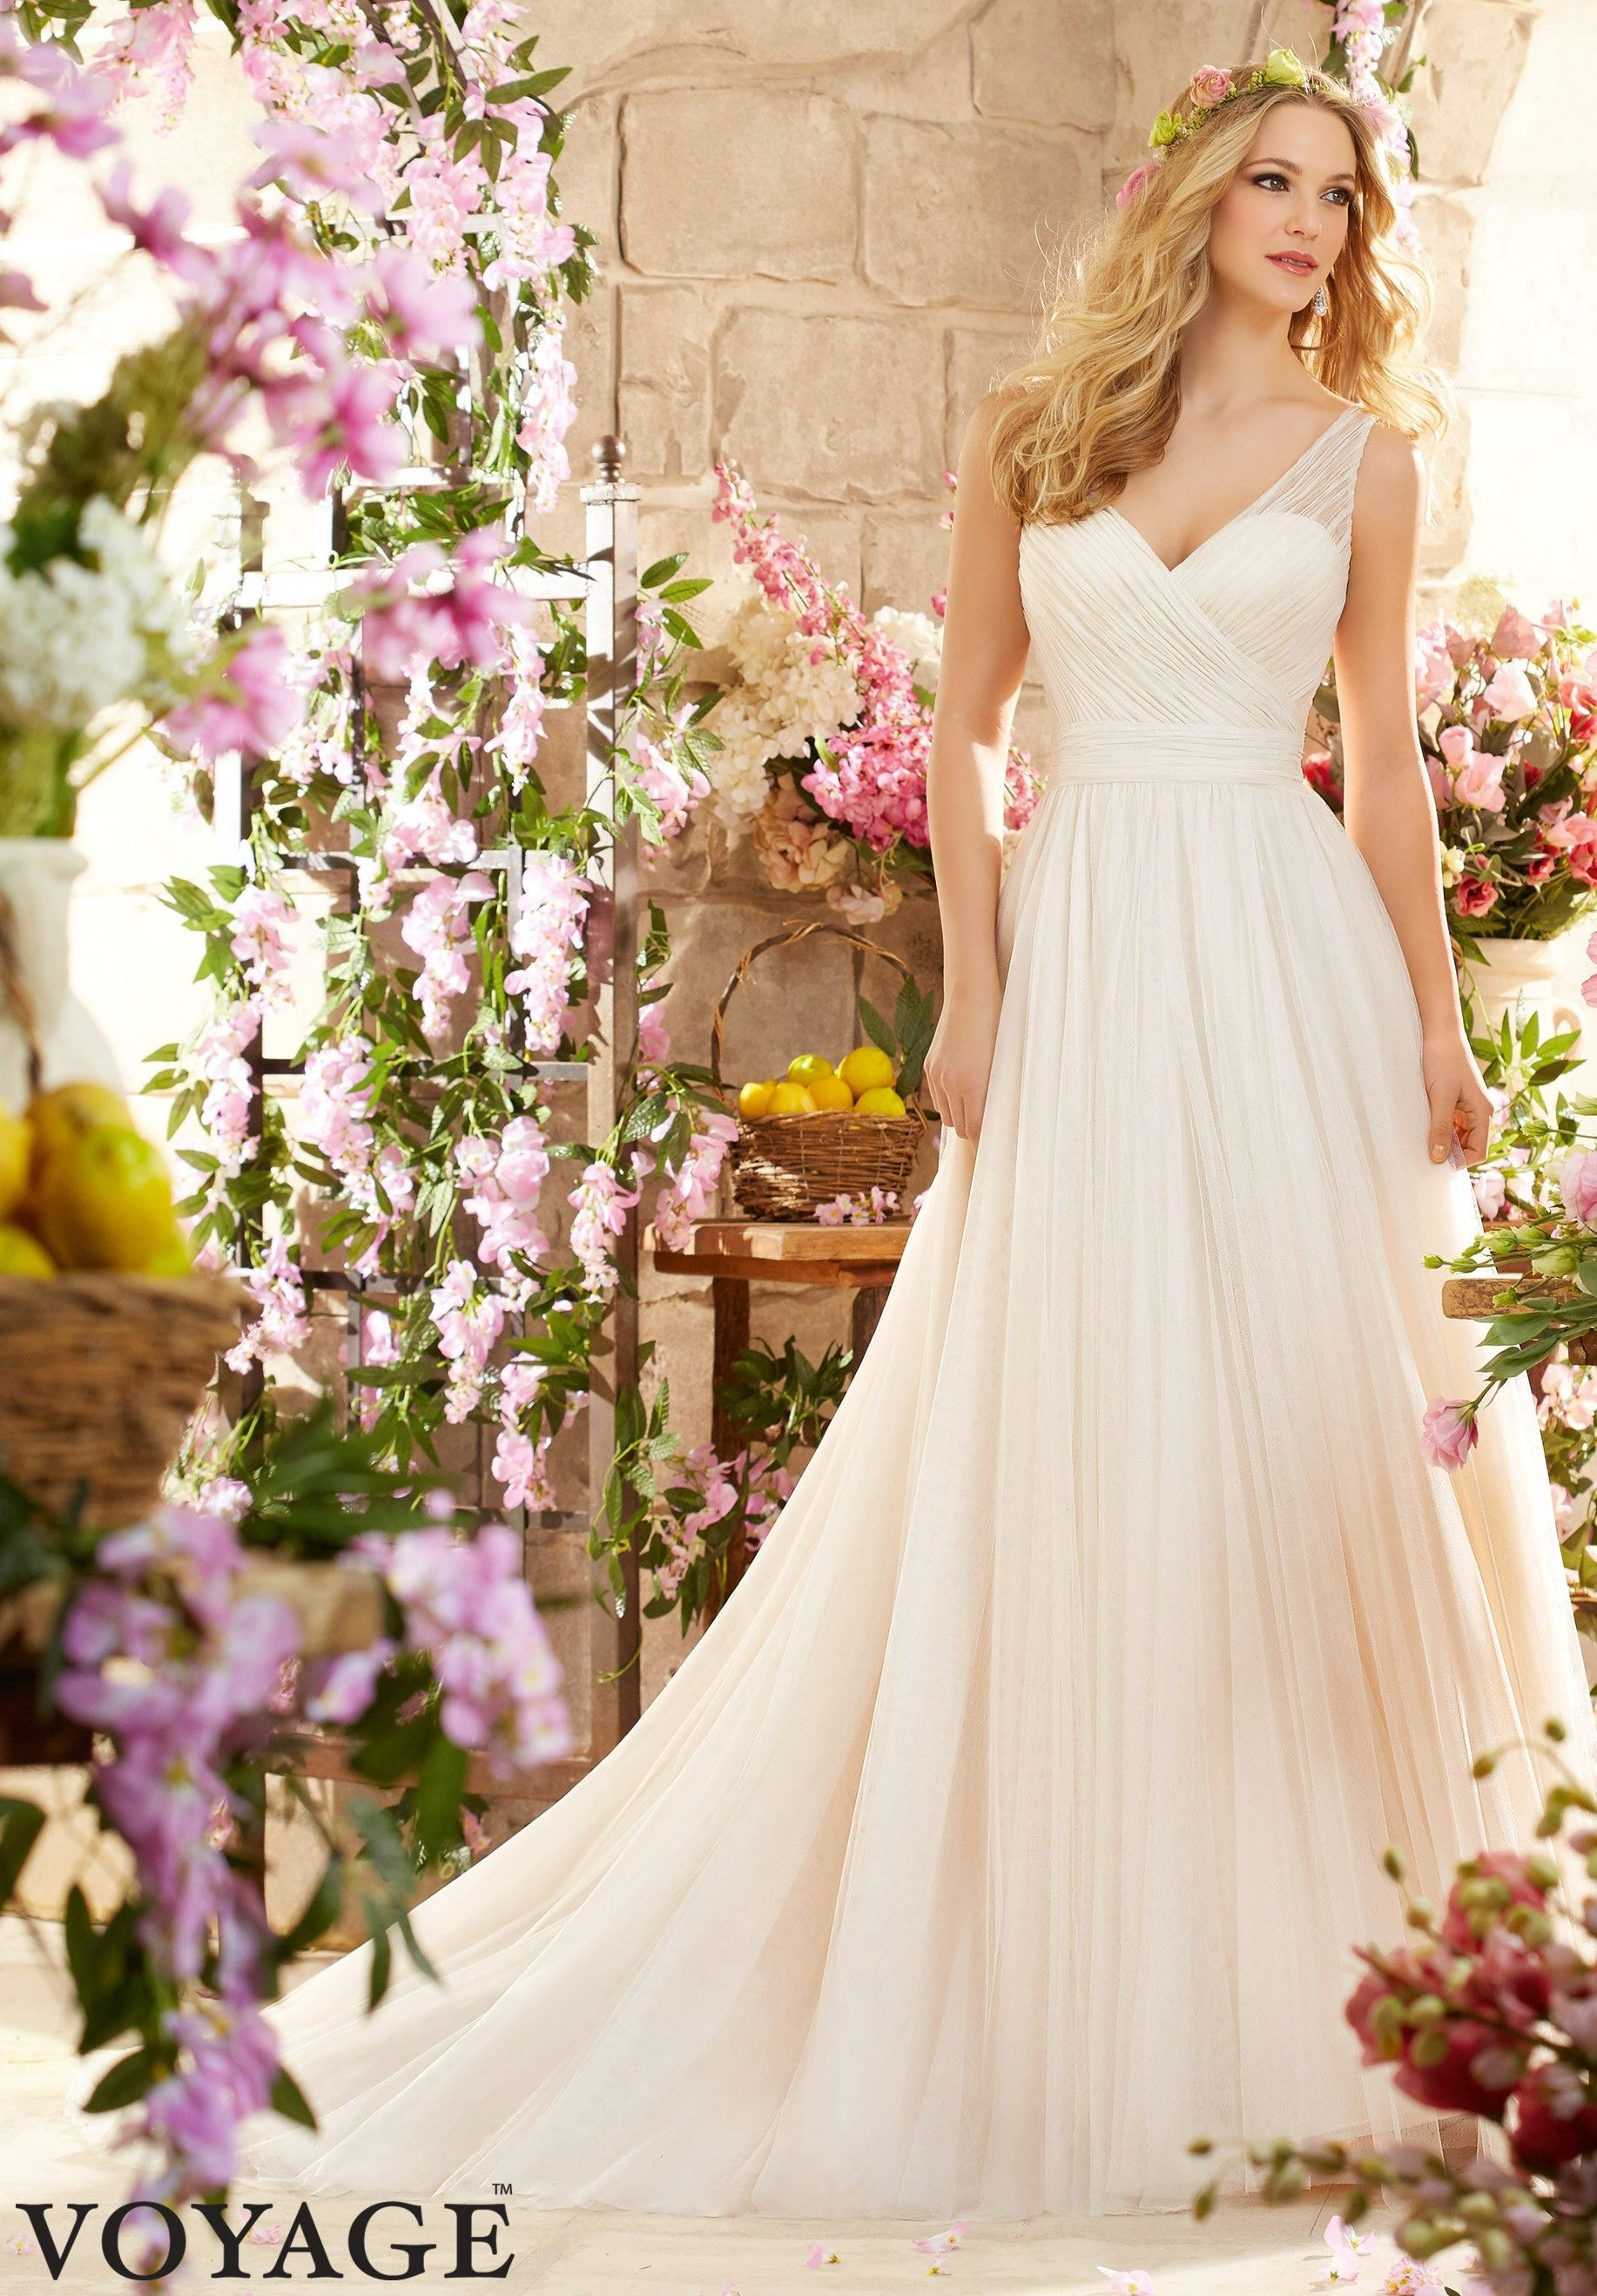 Mori Lee Voyage Wedding Dresses Style 6805 625 00 Bridesmaid Prom And Bridal Best Prices